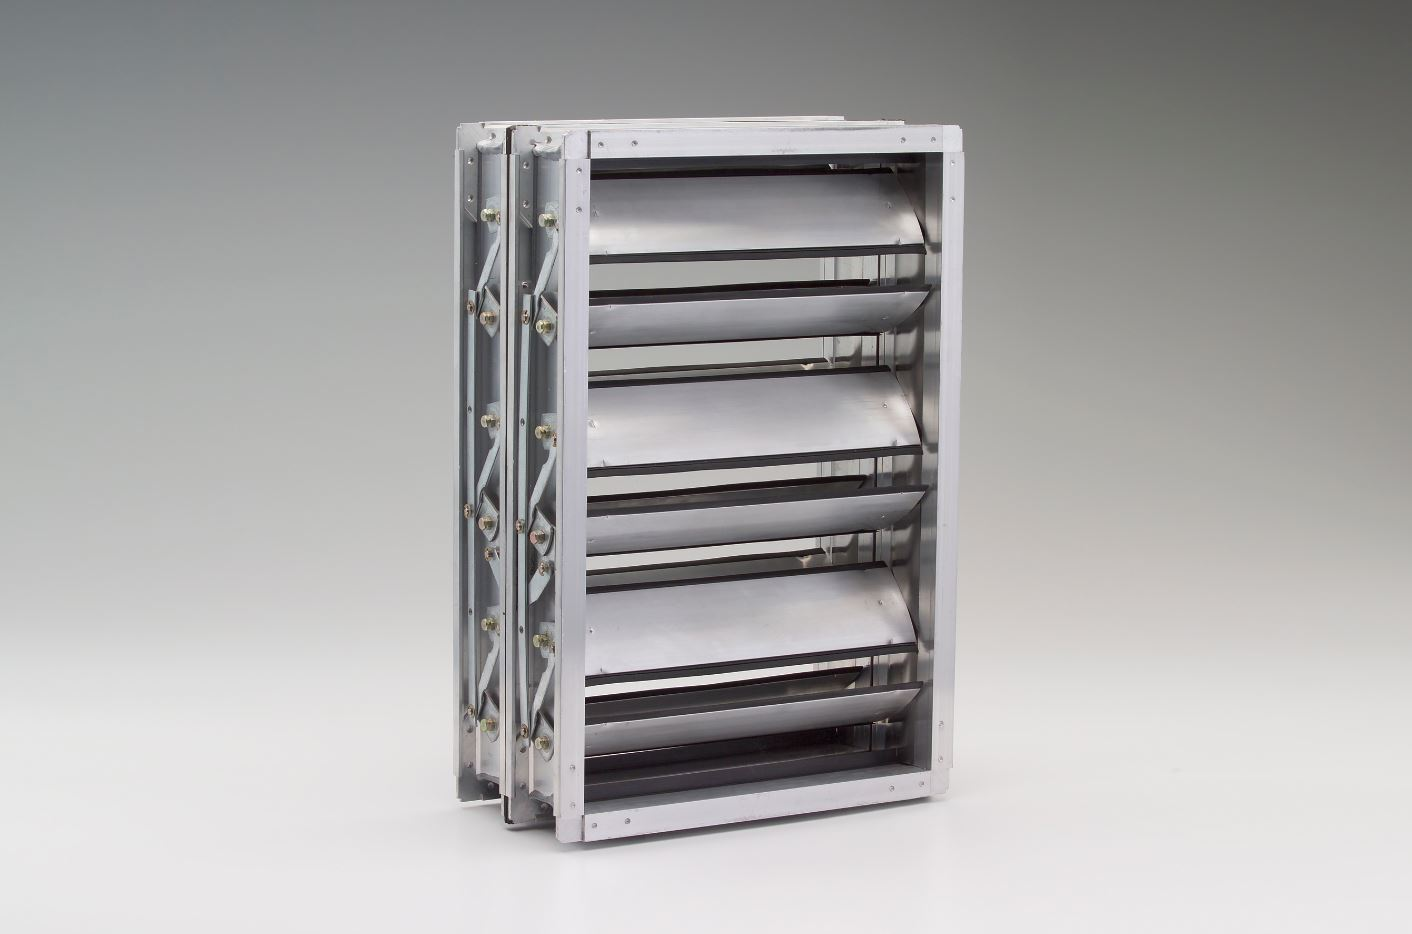 Ruskin Authority in Air Control, Fire / Smoke Dampers and